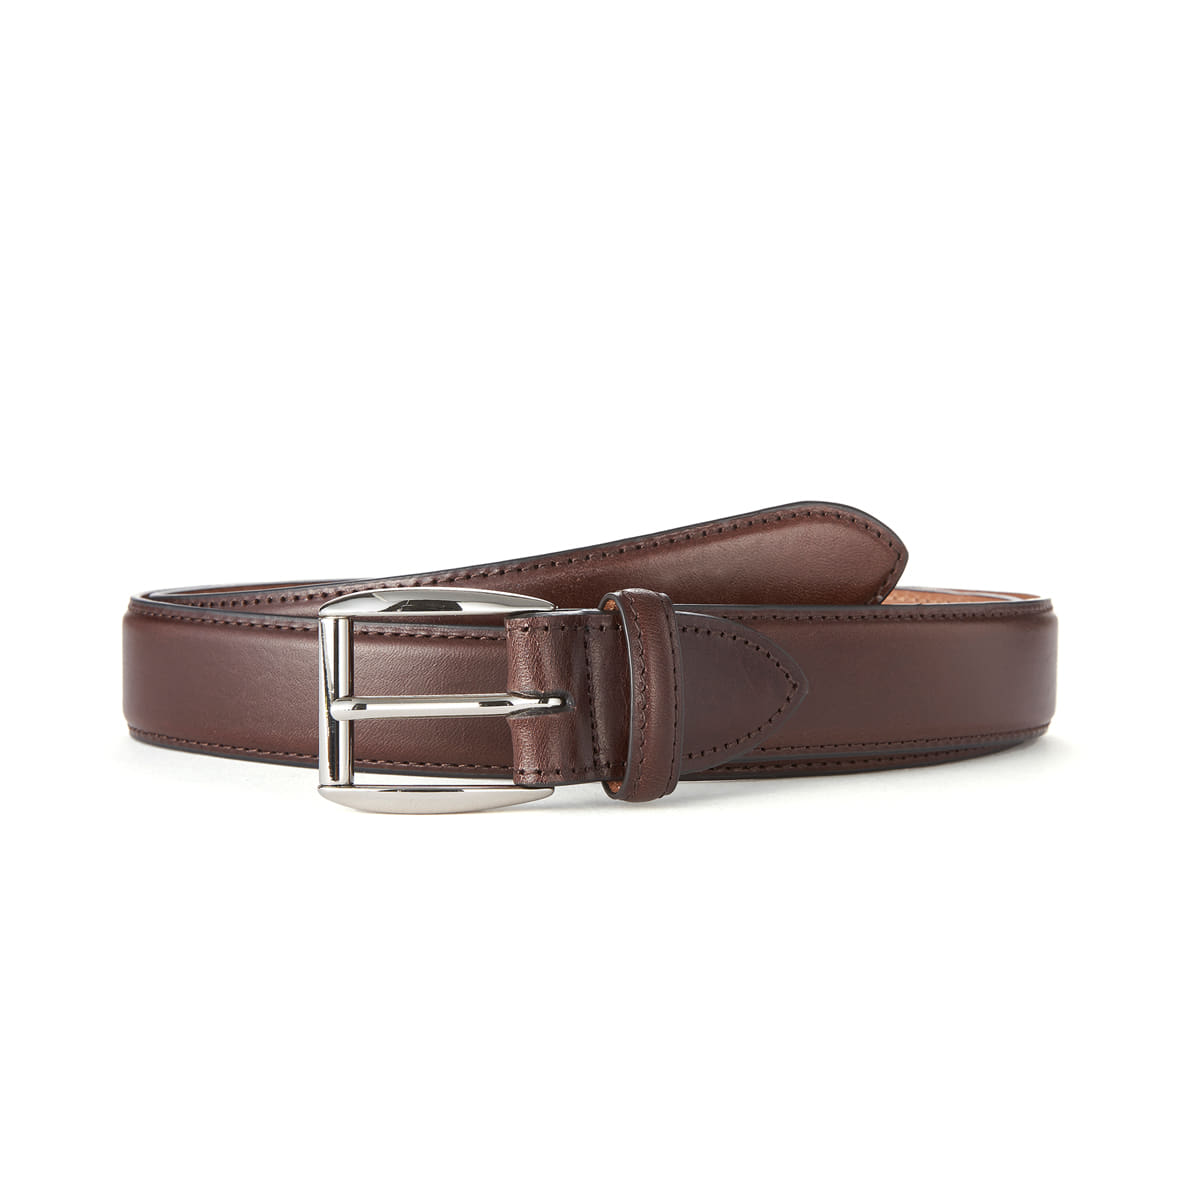 Dk brown leather belt (Silver Buckle)